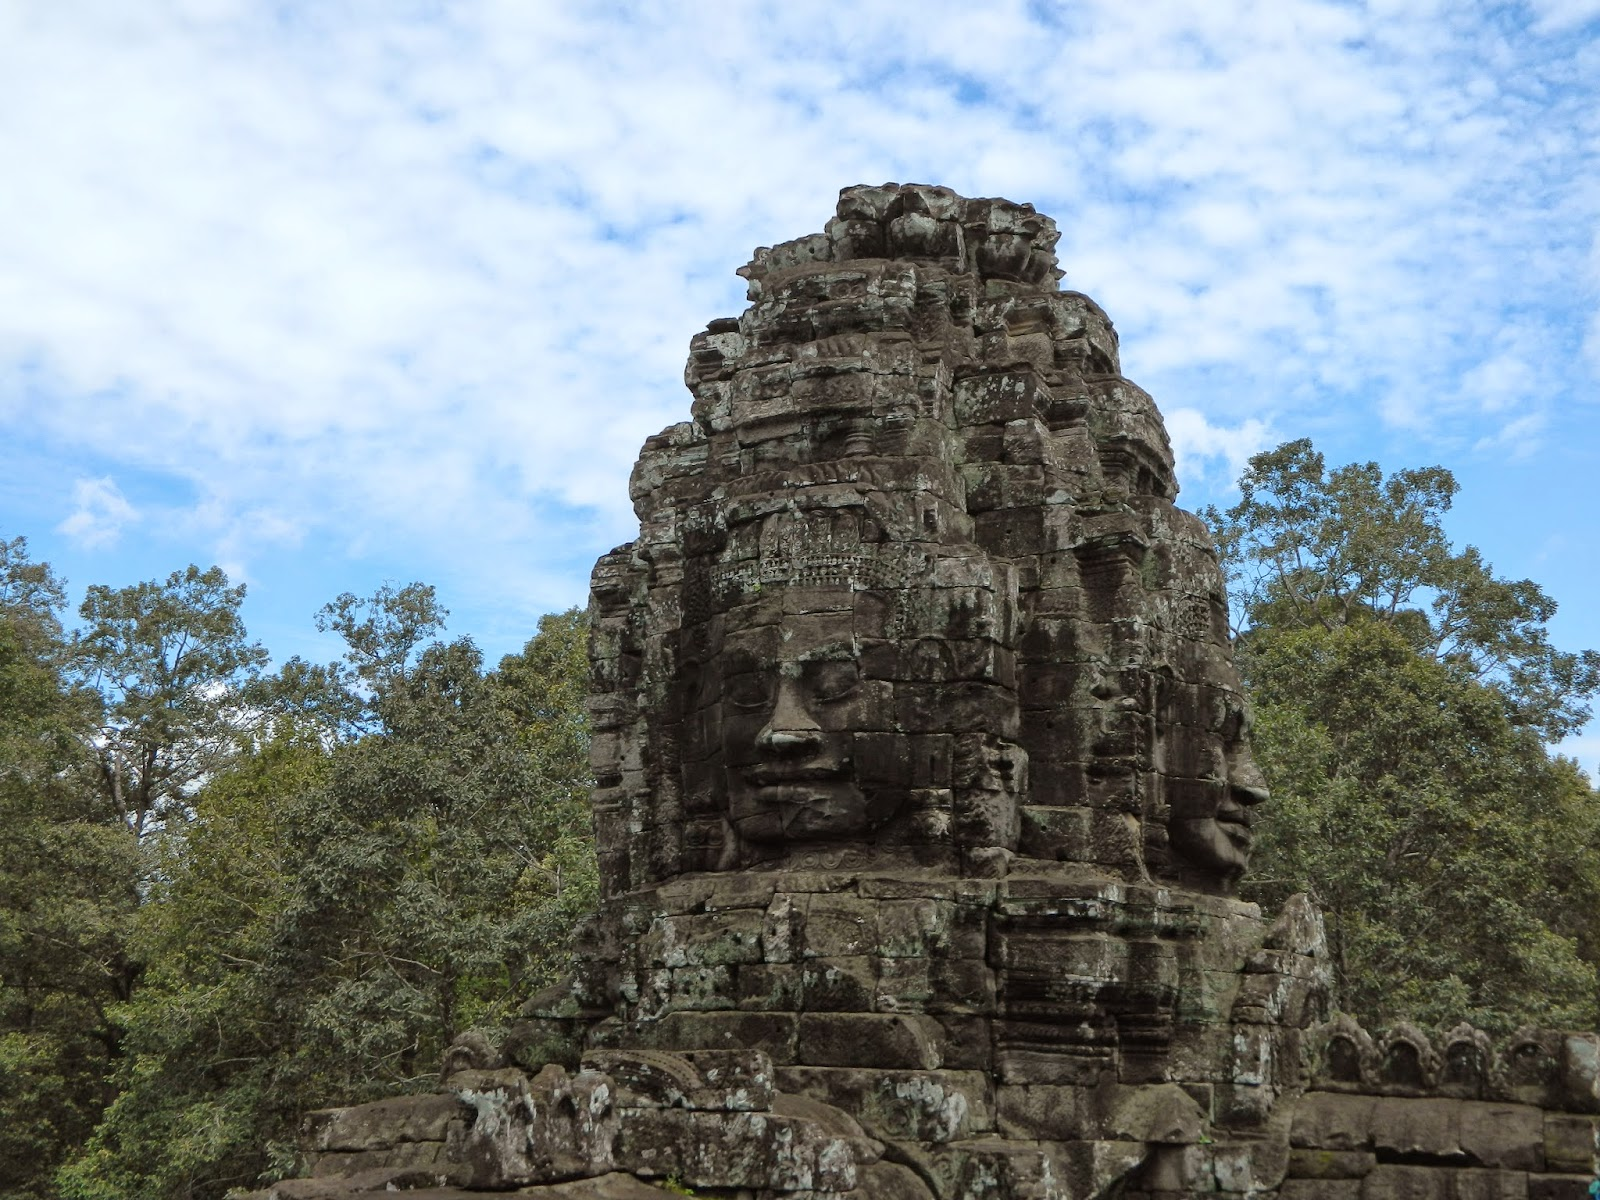 There 4 faced tower in Bayon